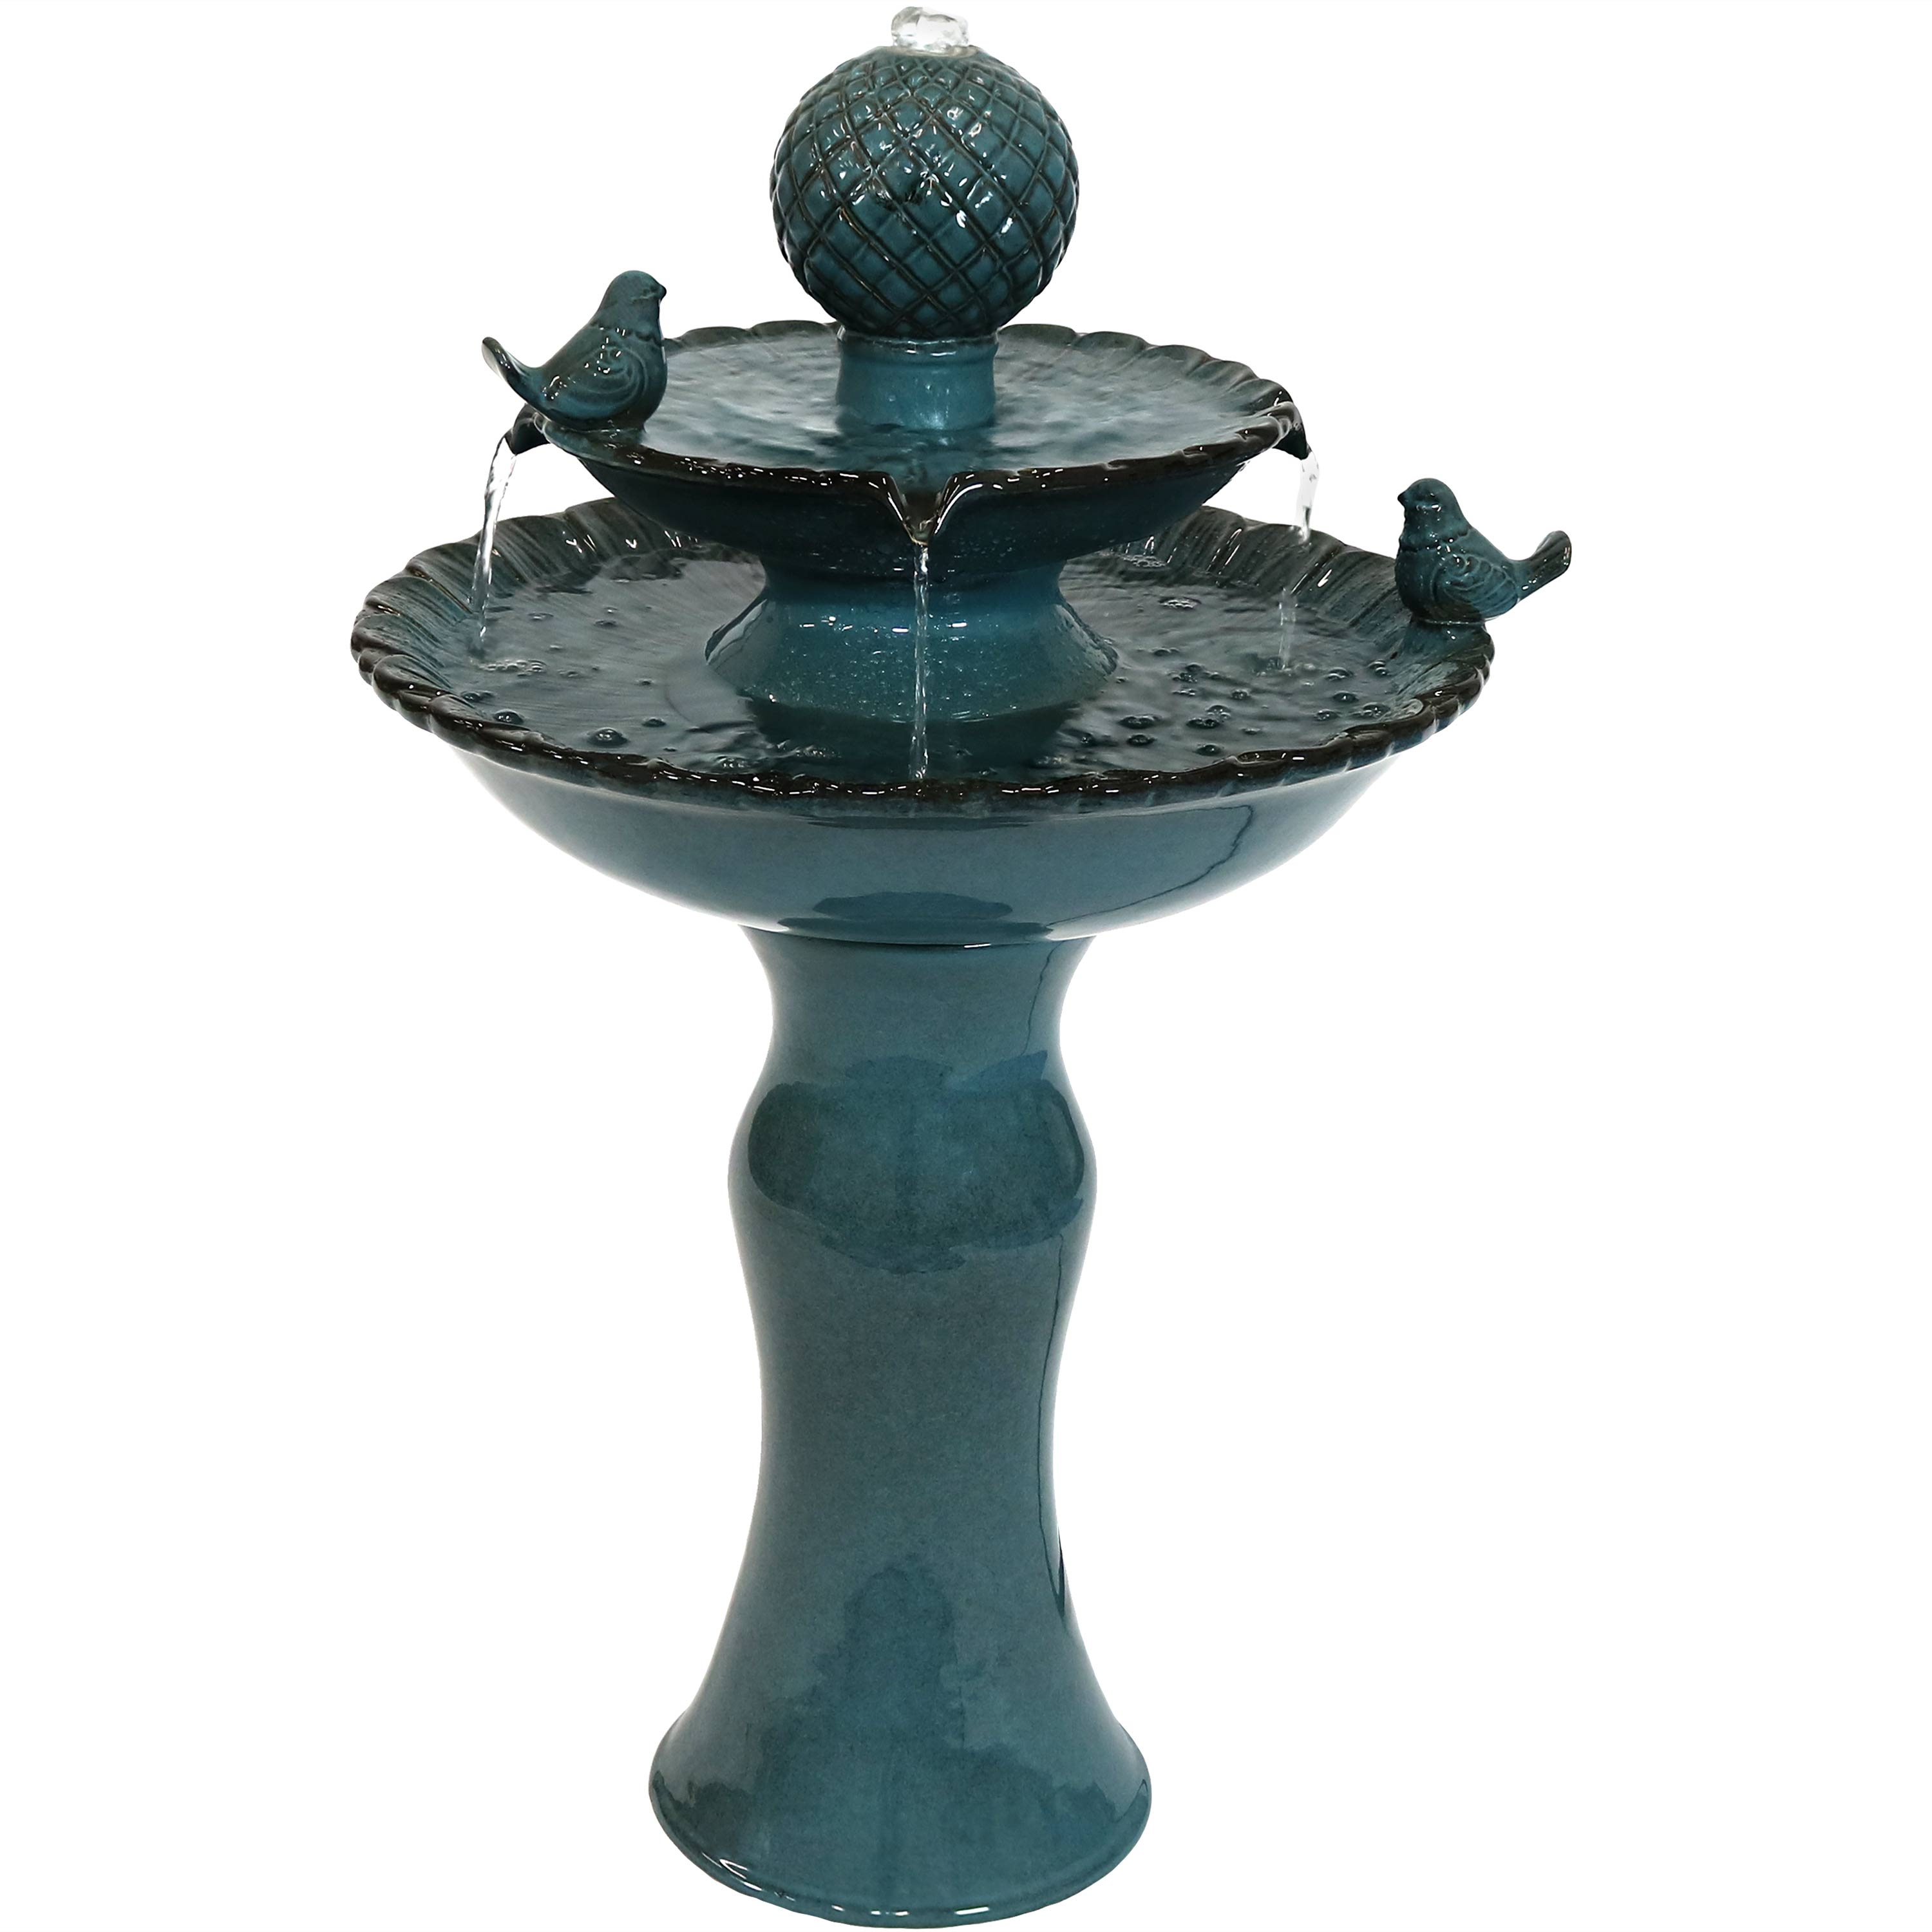 Outdoor Chiselled Bowl Planter, Outdoor water feature